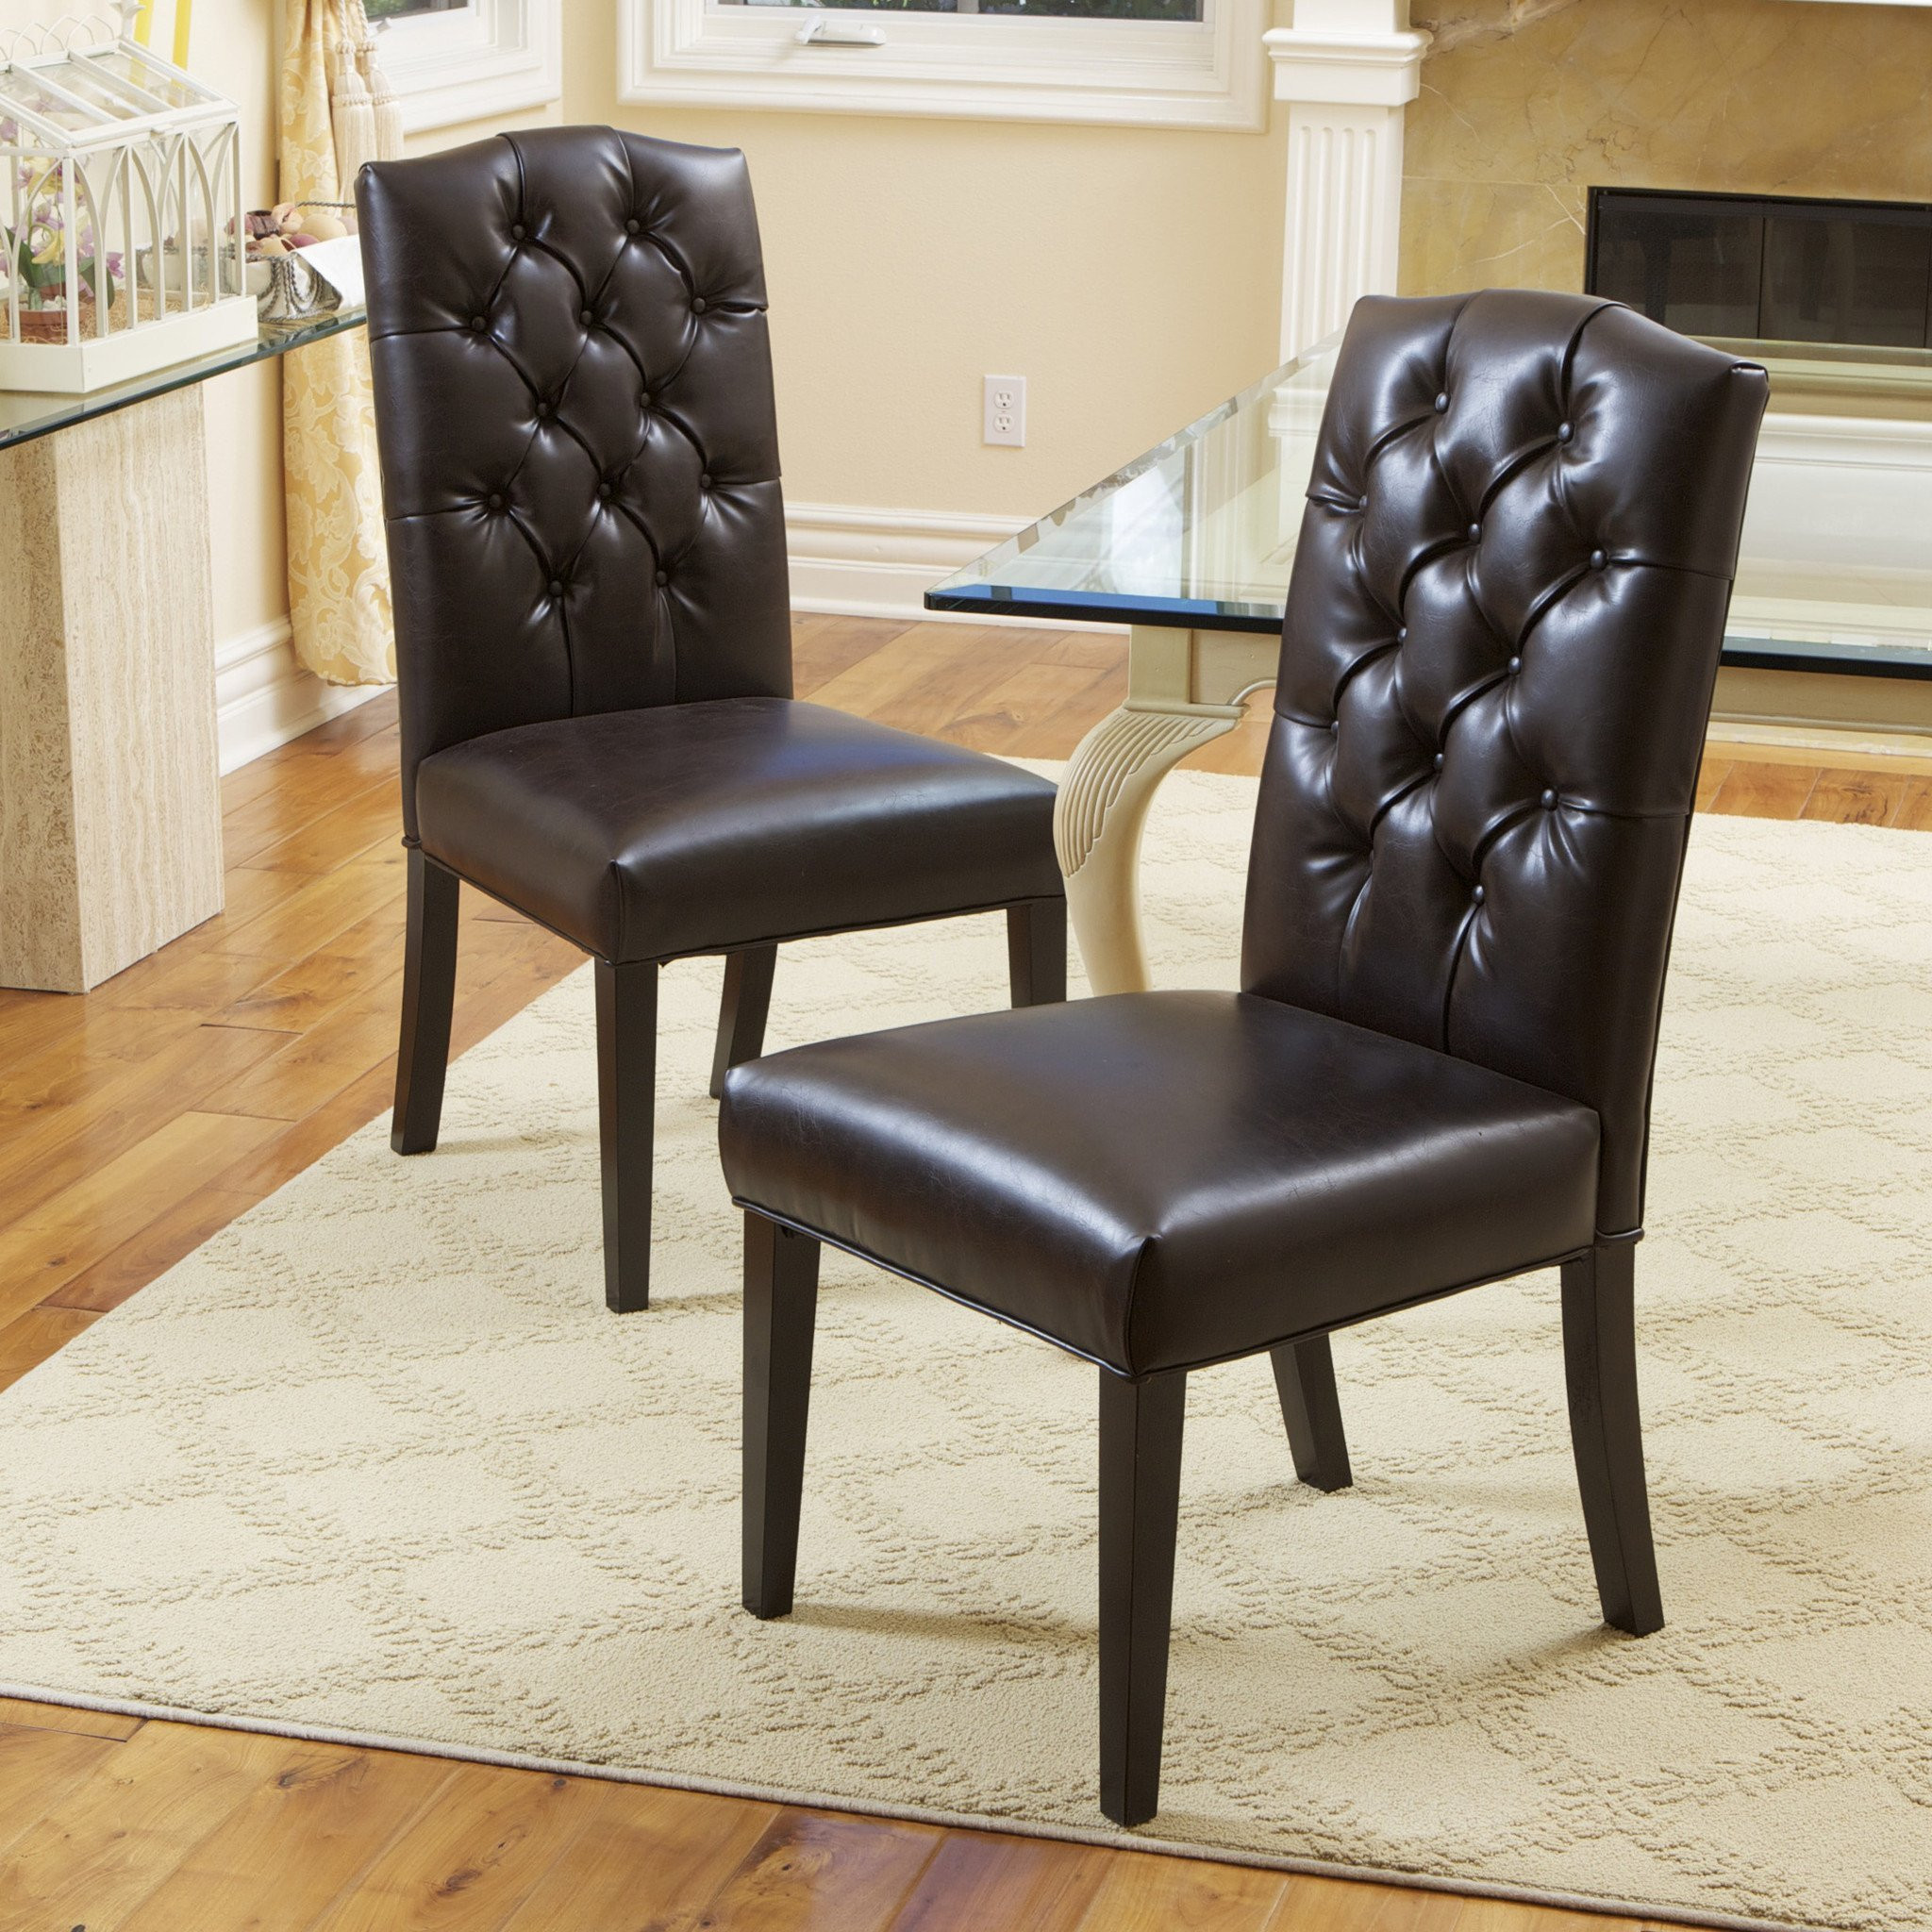 Clark Brown Leather Dining Chair (Set of 2)